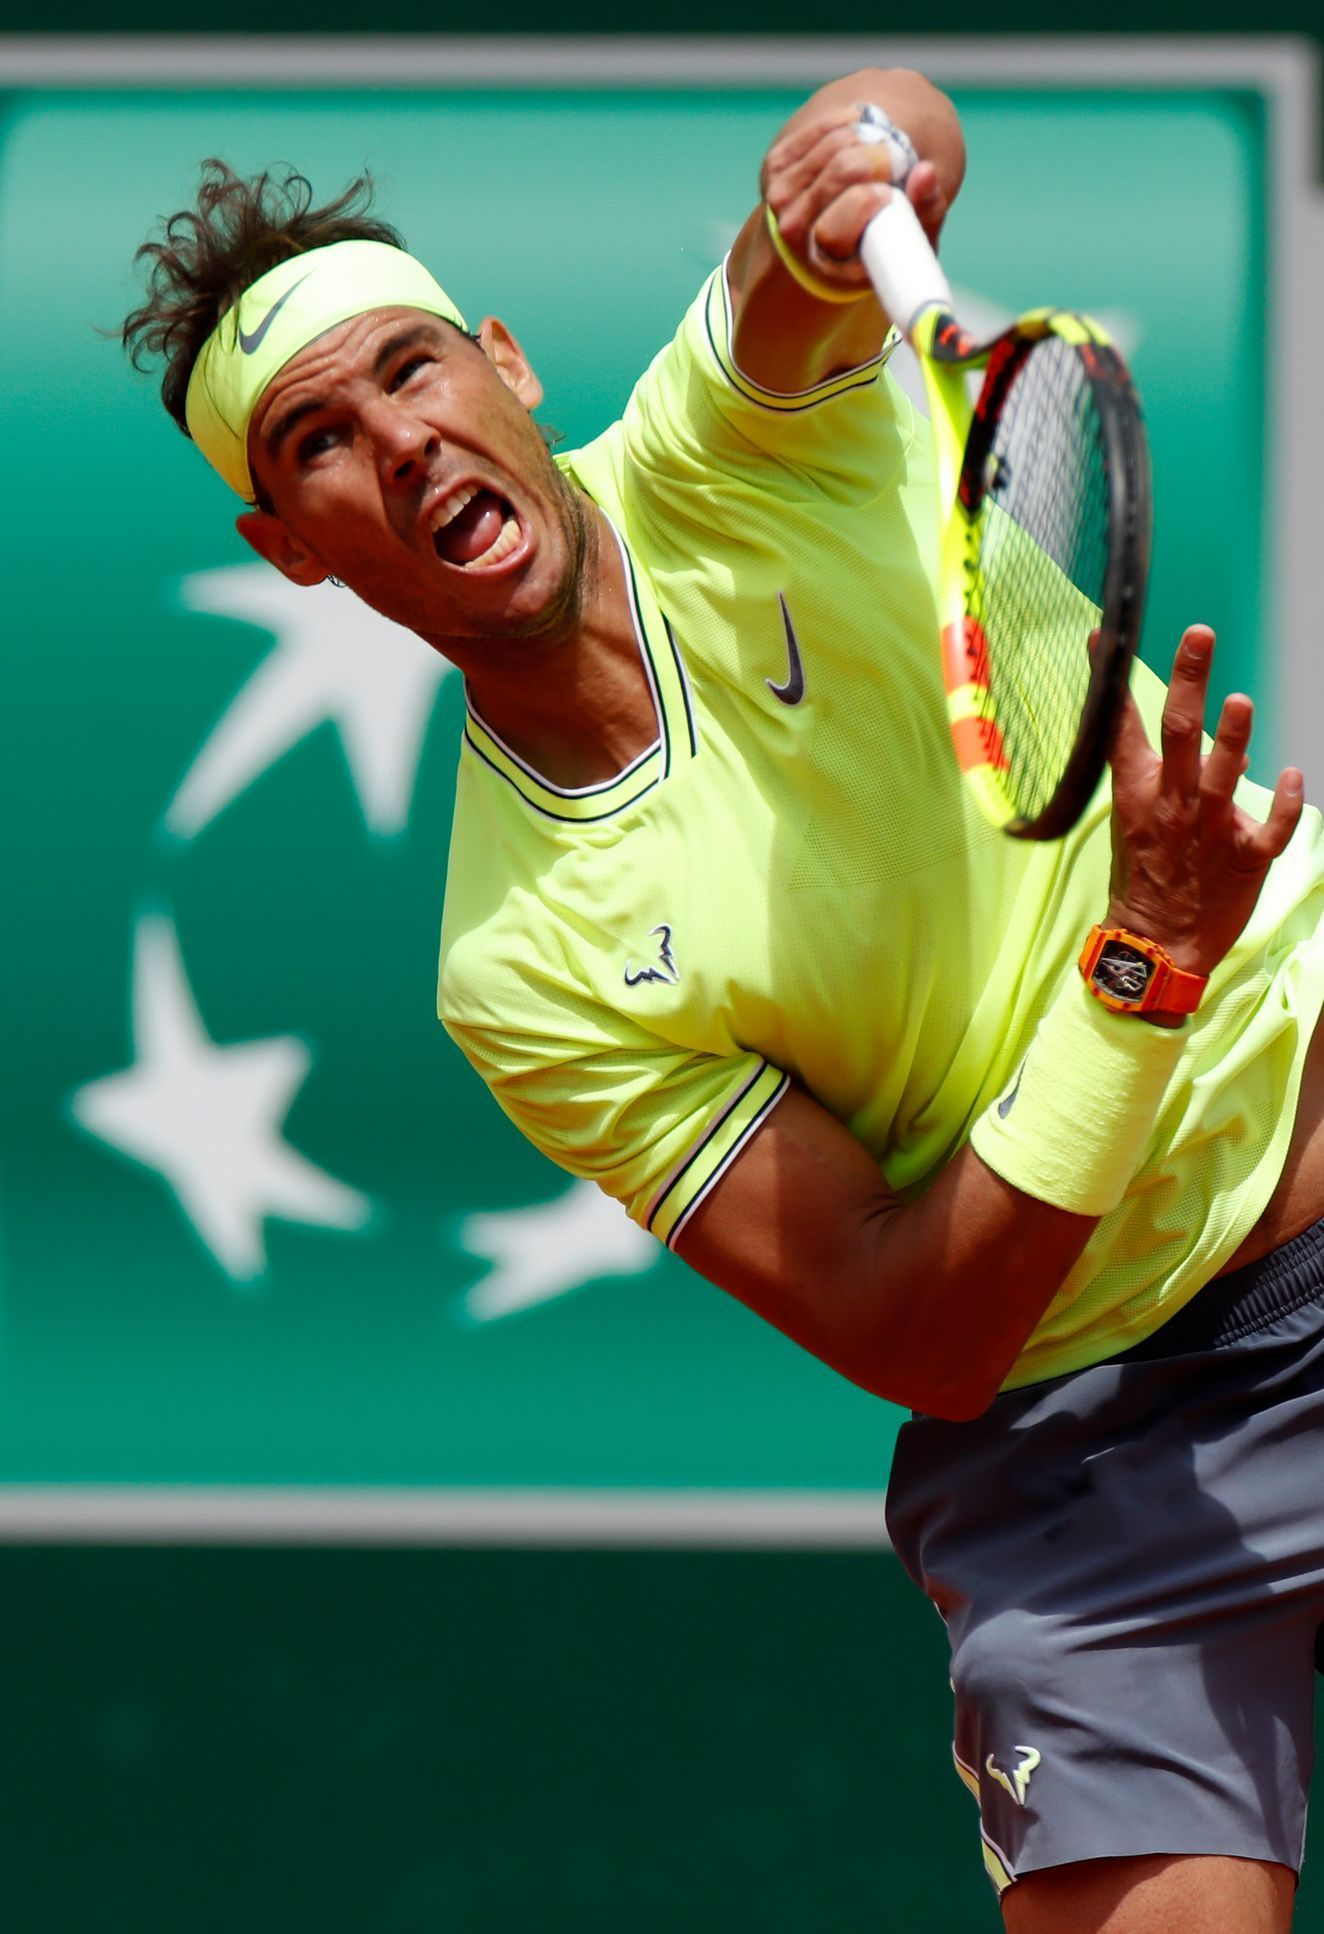 Móda na French Open 2019 (Rafael Nadal)